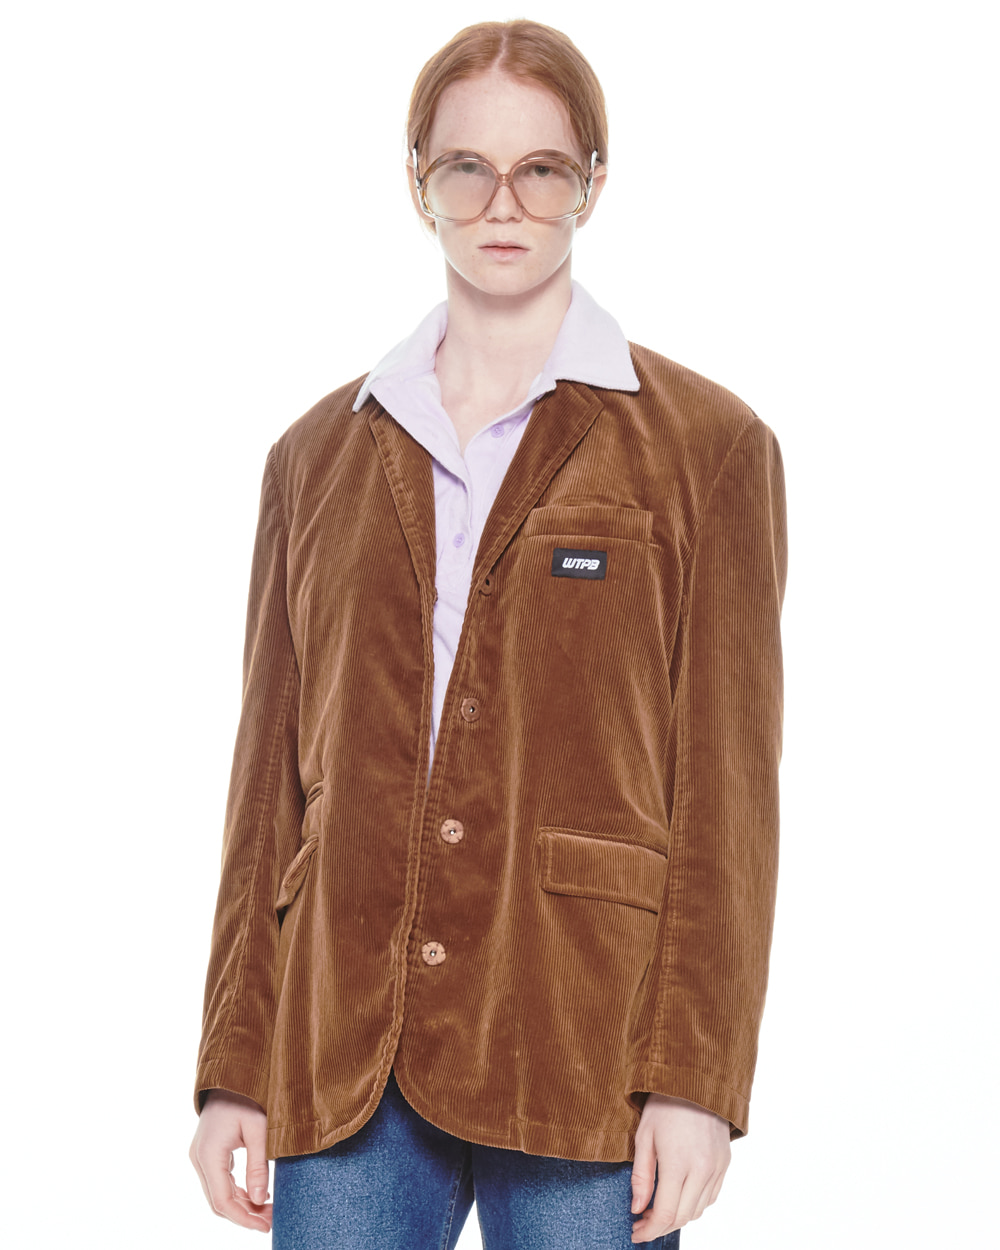 FW20 HIDDEN BUTTON CORDUROY BROWN JACKET